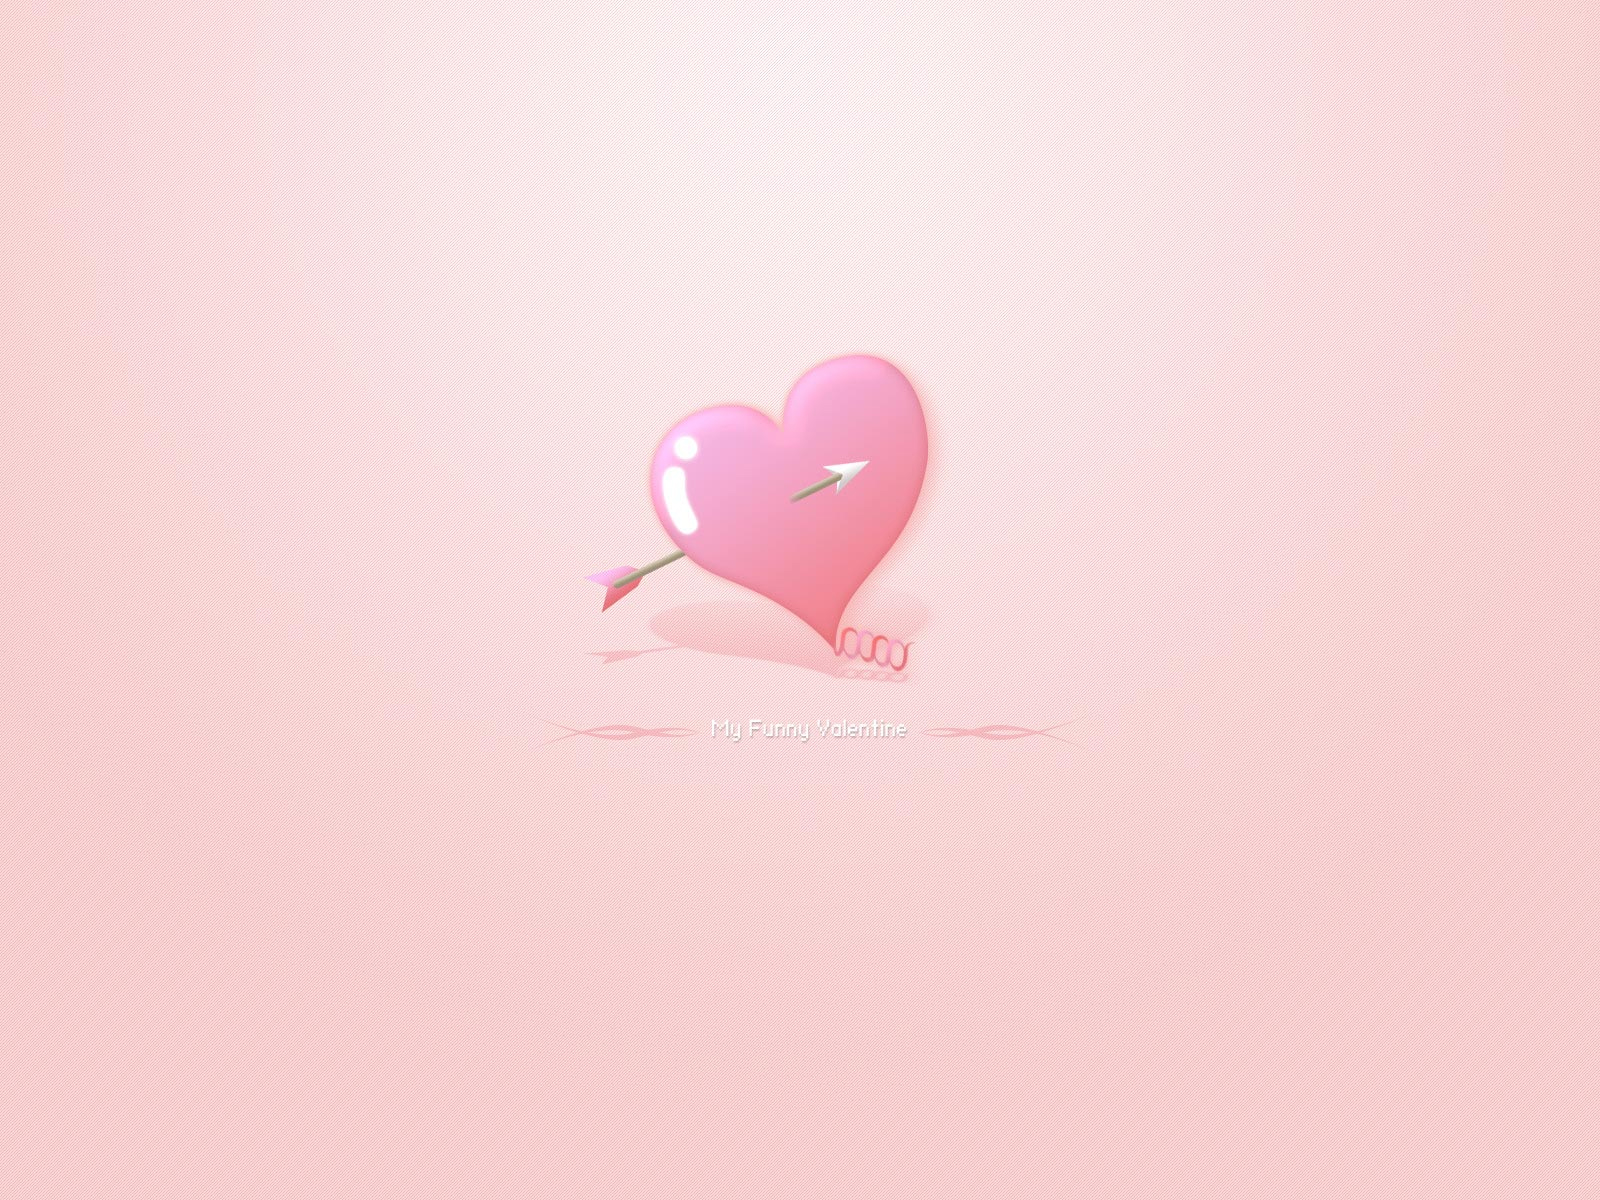 my funny valentine wallpapers | my funny valentine stock photos